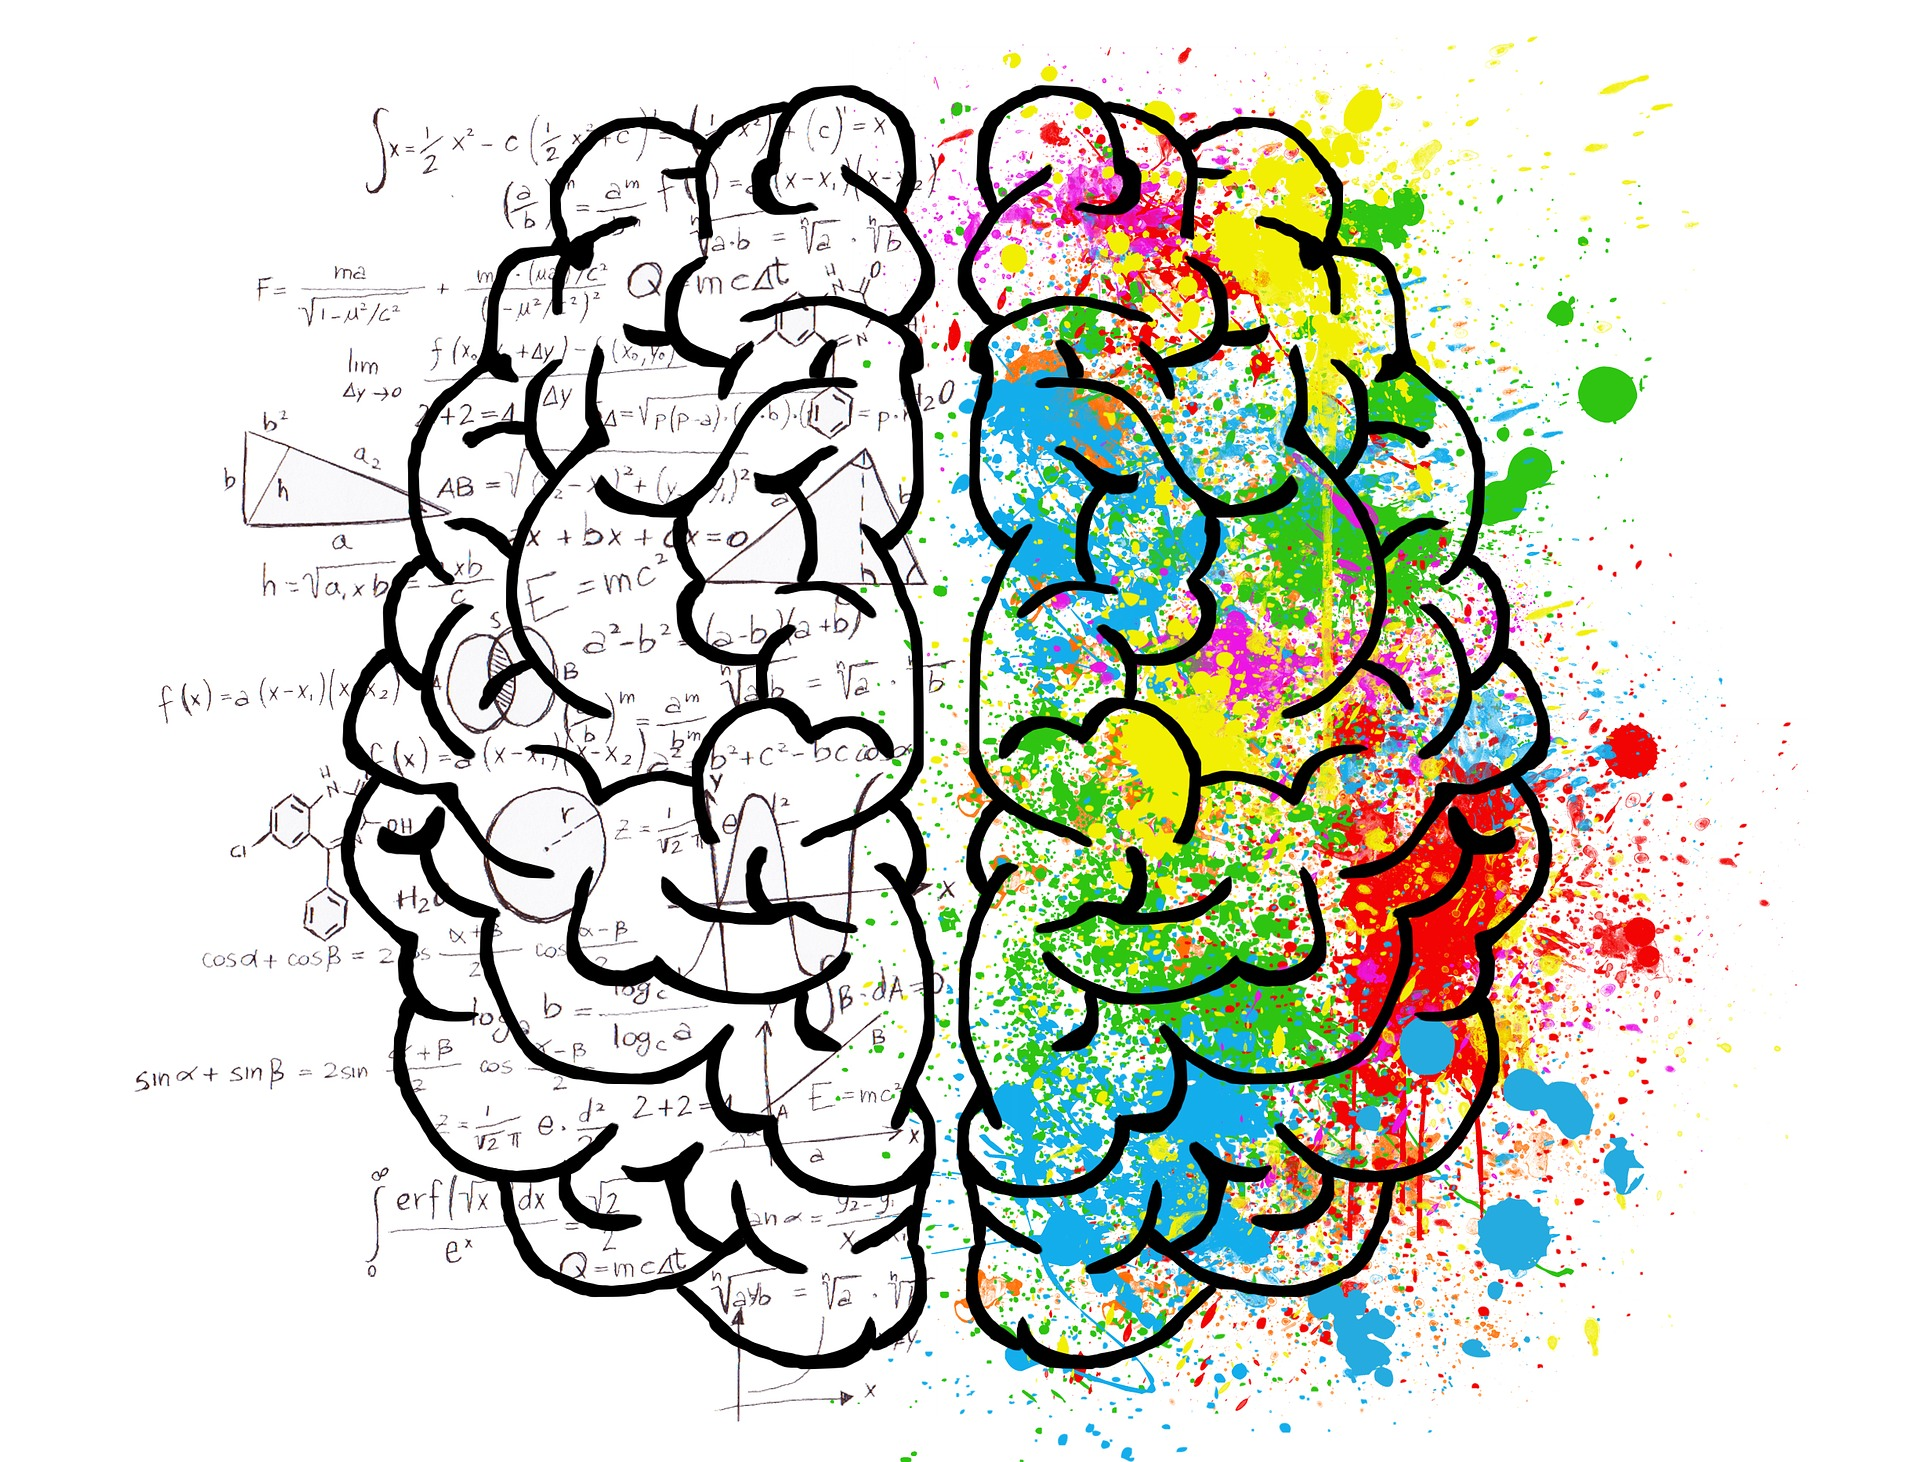 a depiction of the right and left side of a brain, where the right is covered in science and math equations and the left is covered in bright splotches of color.